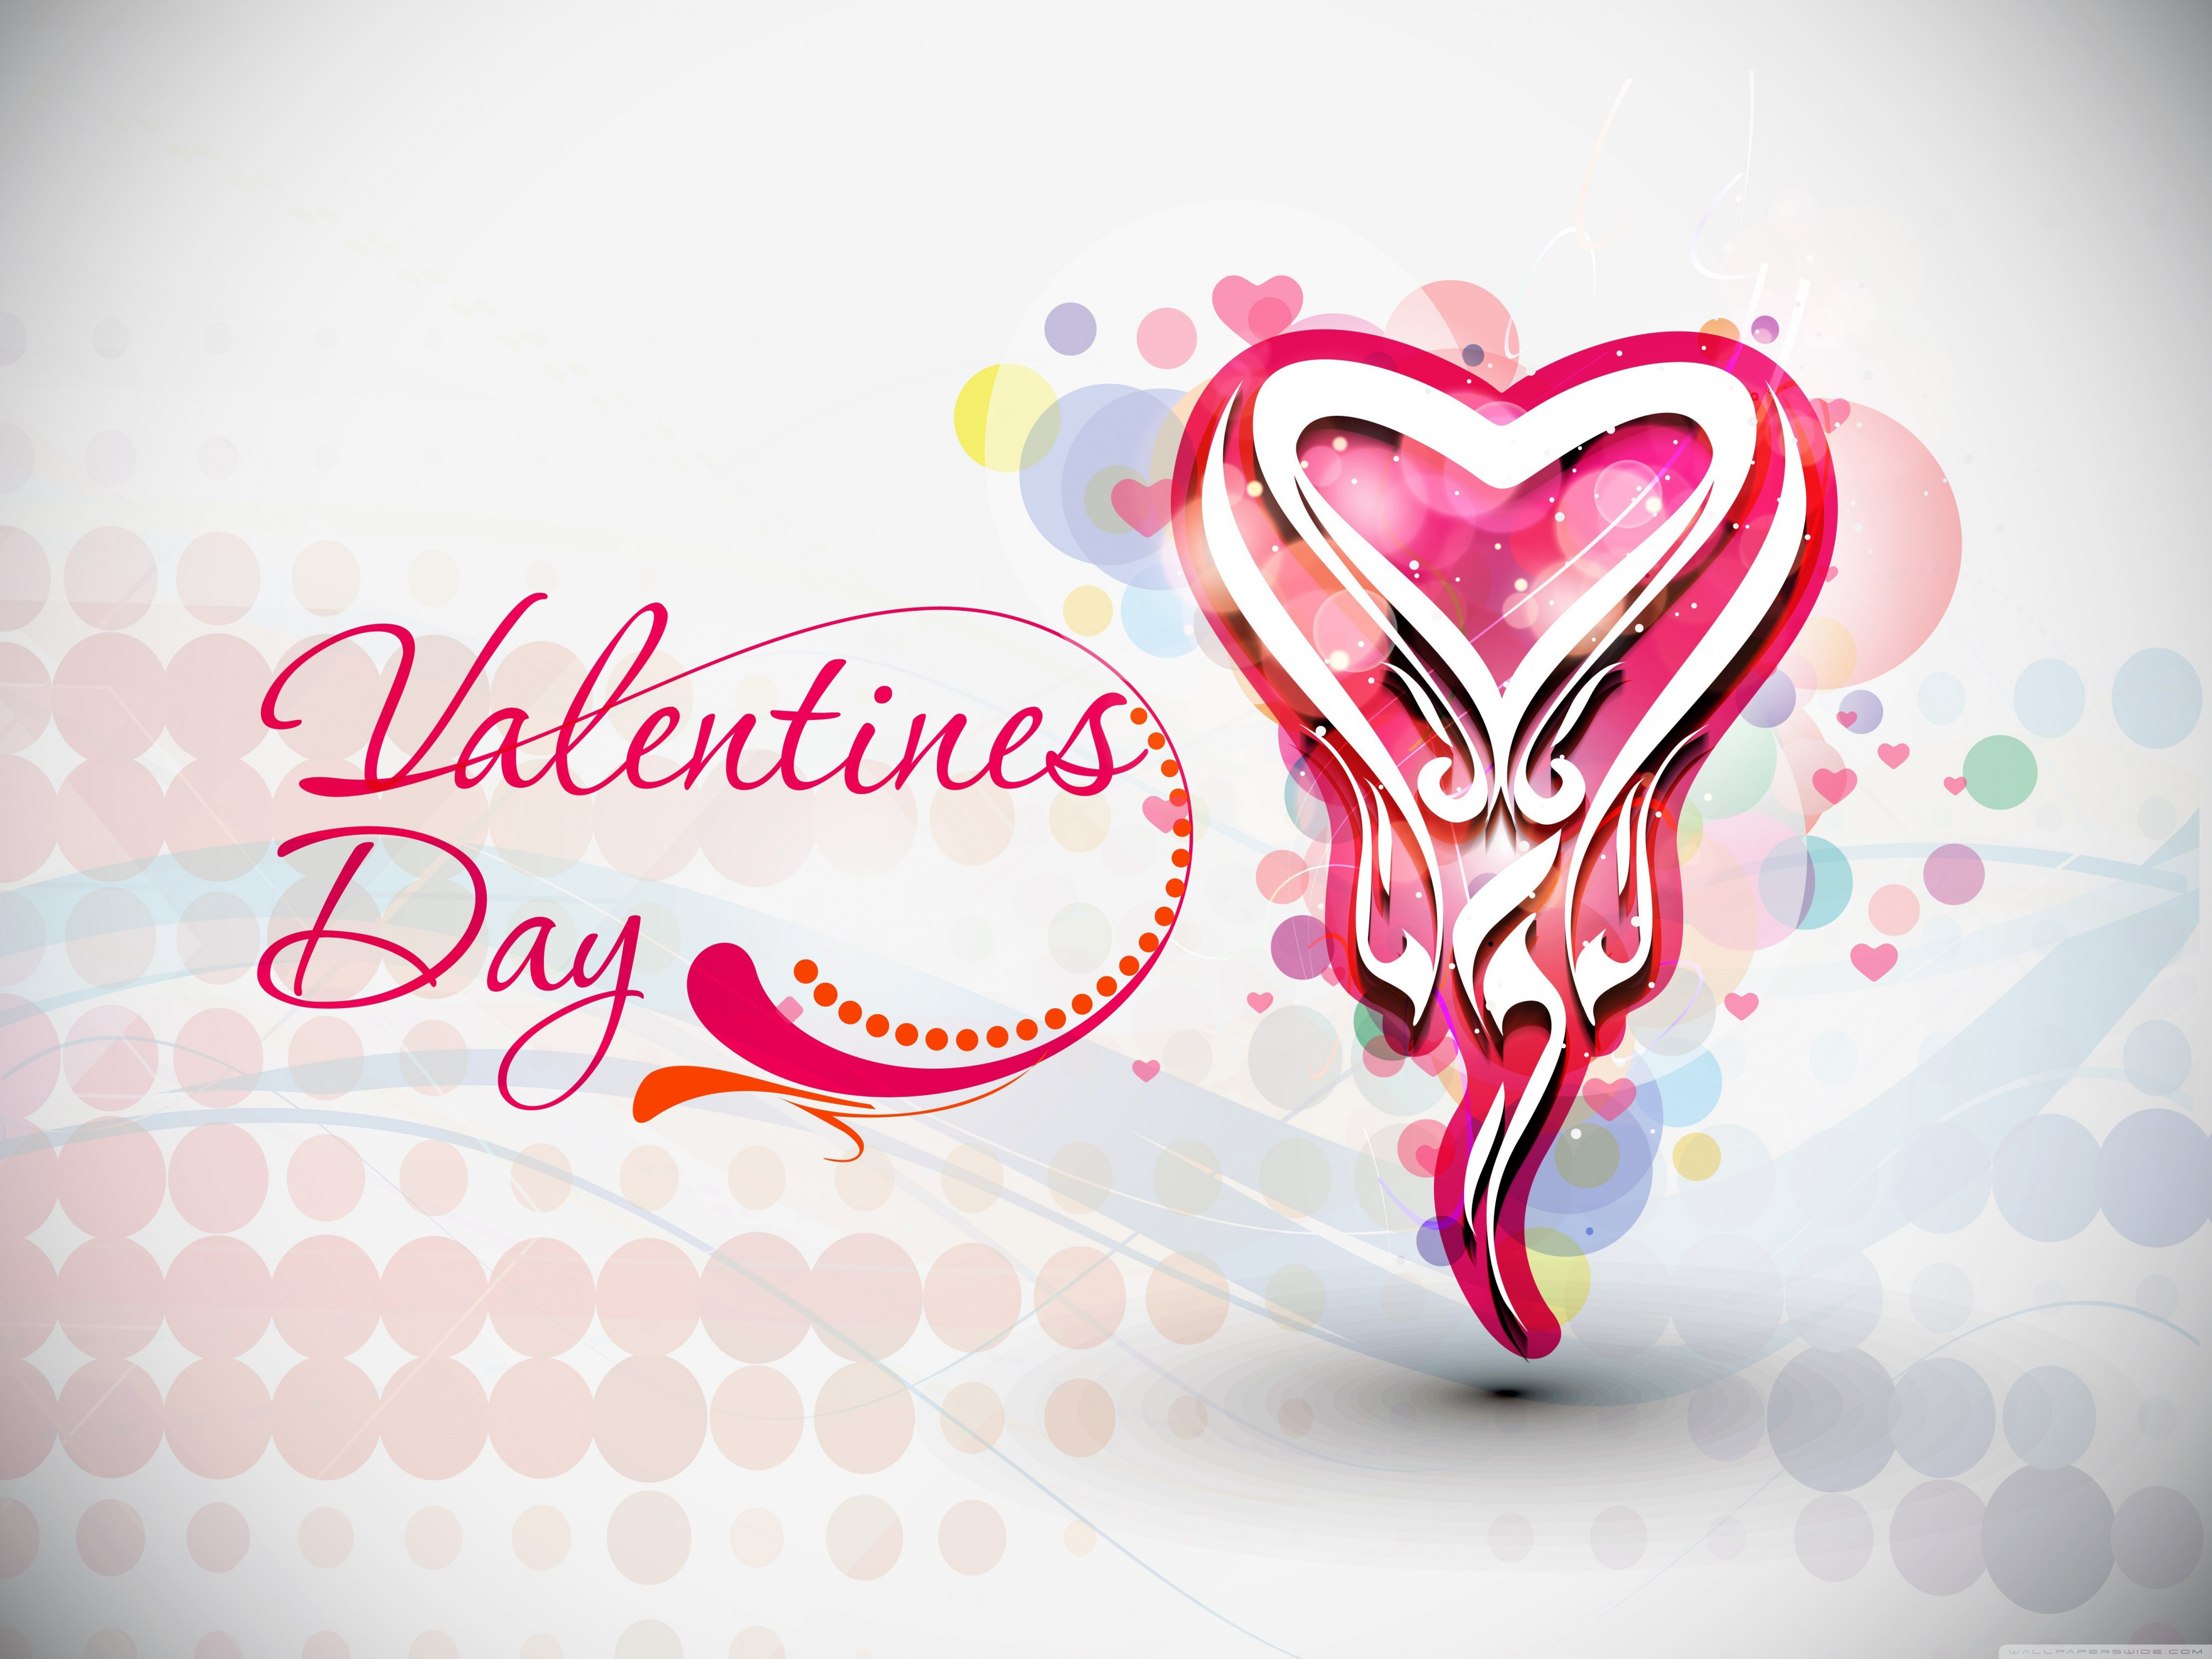 happy valentine day 2018 images, wallpapers, pictures 8 statushappy valentine day 2018 images, wallpapers, pictures